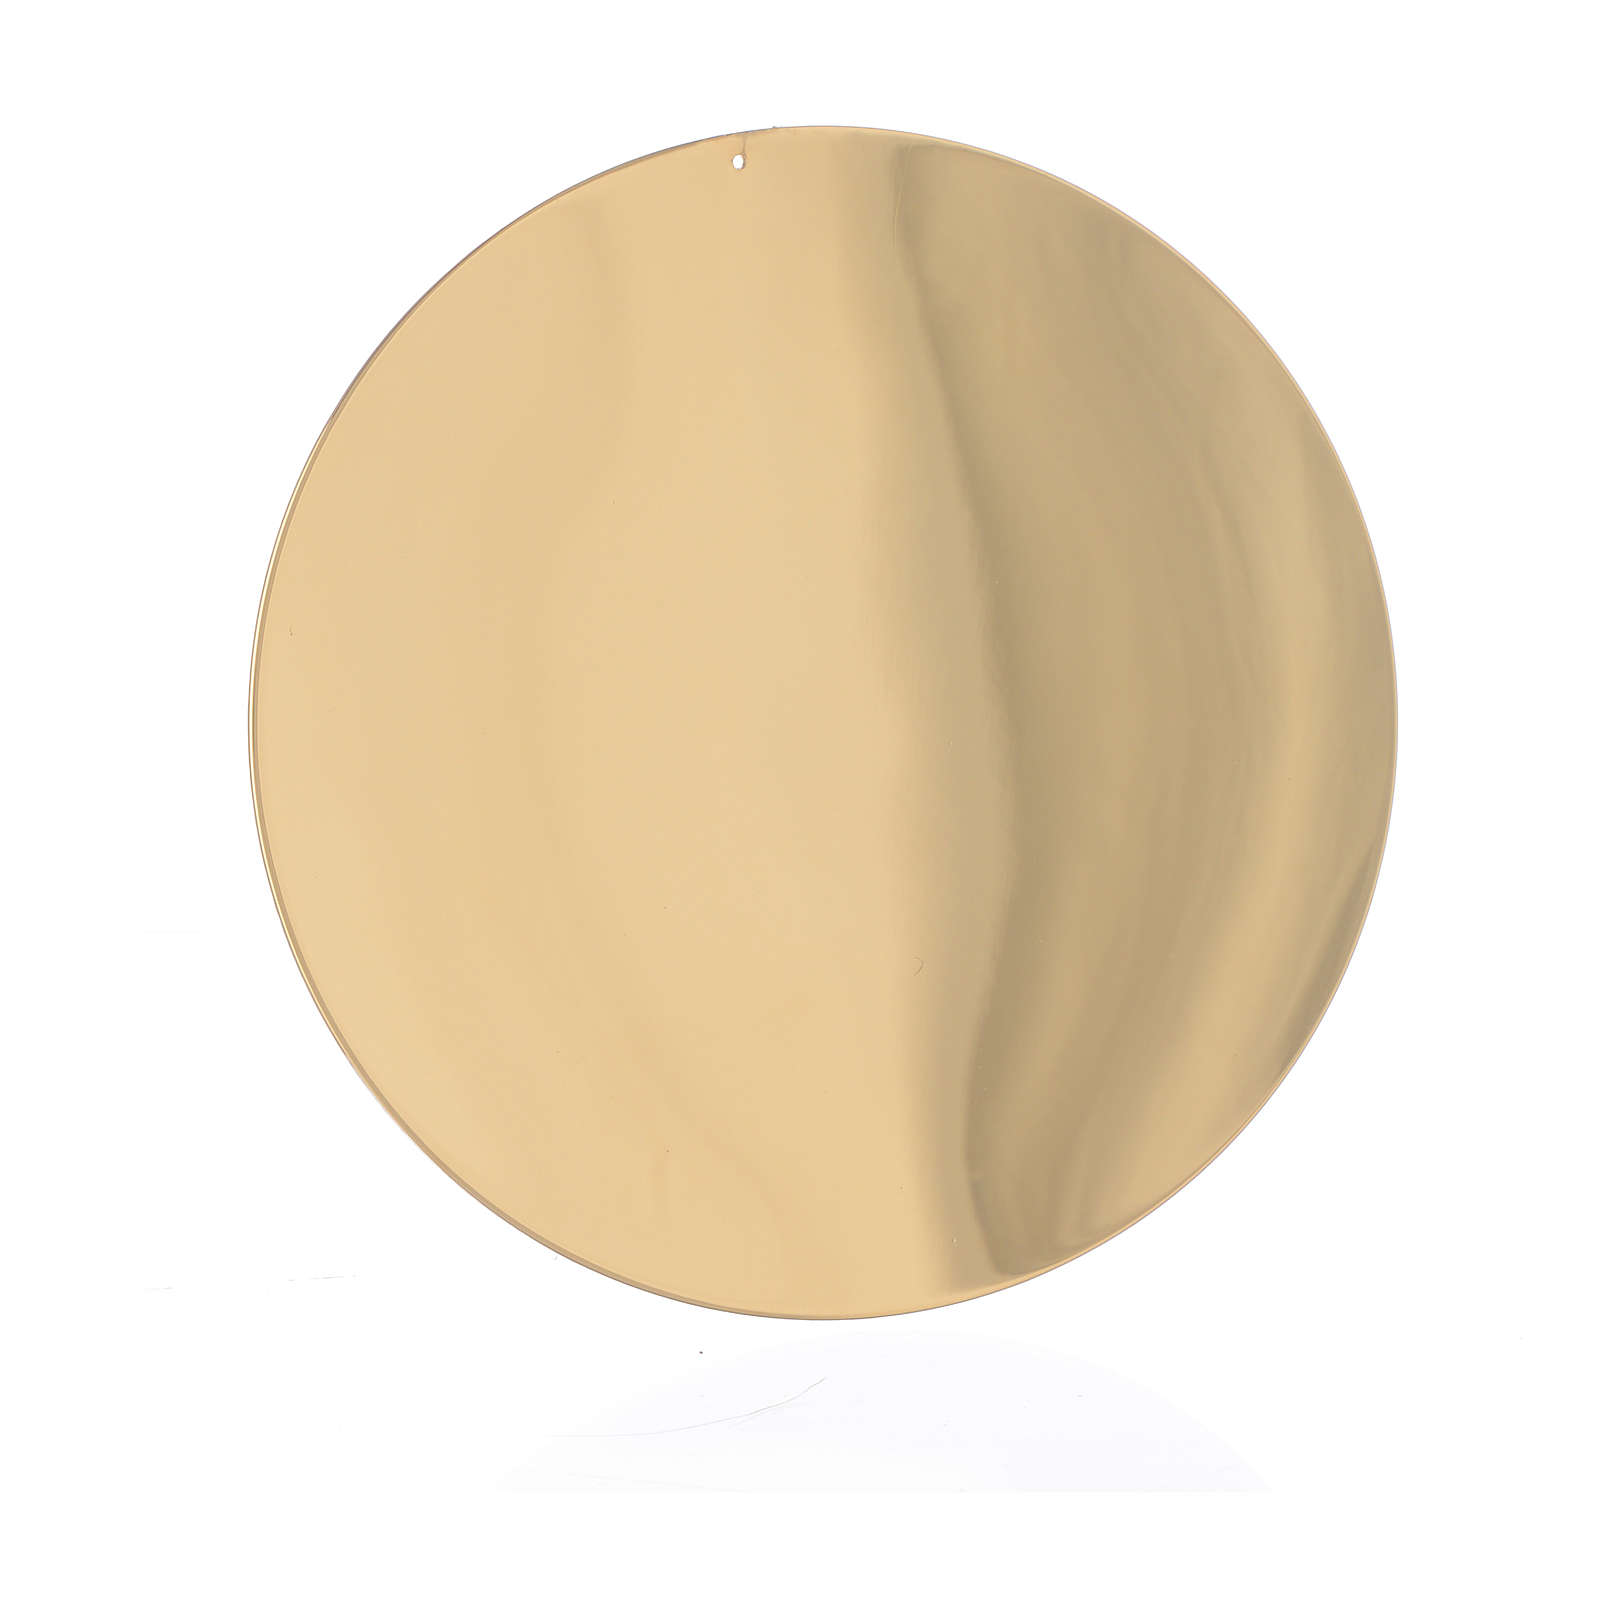 Paten smooth and shiny brass, 10cm 4